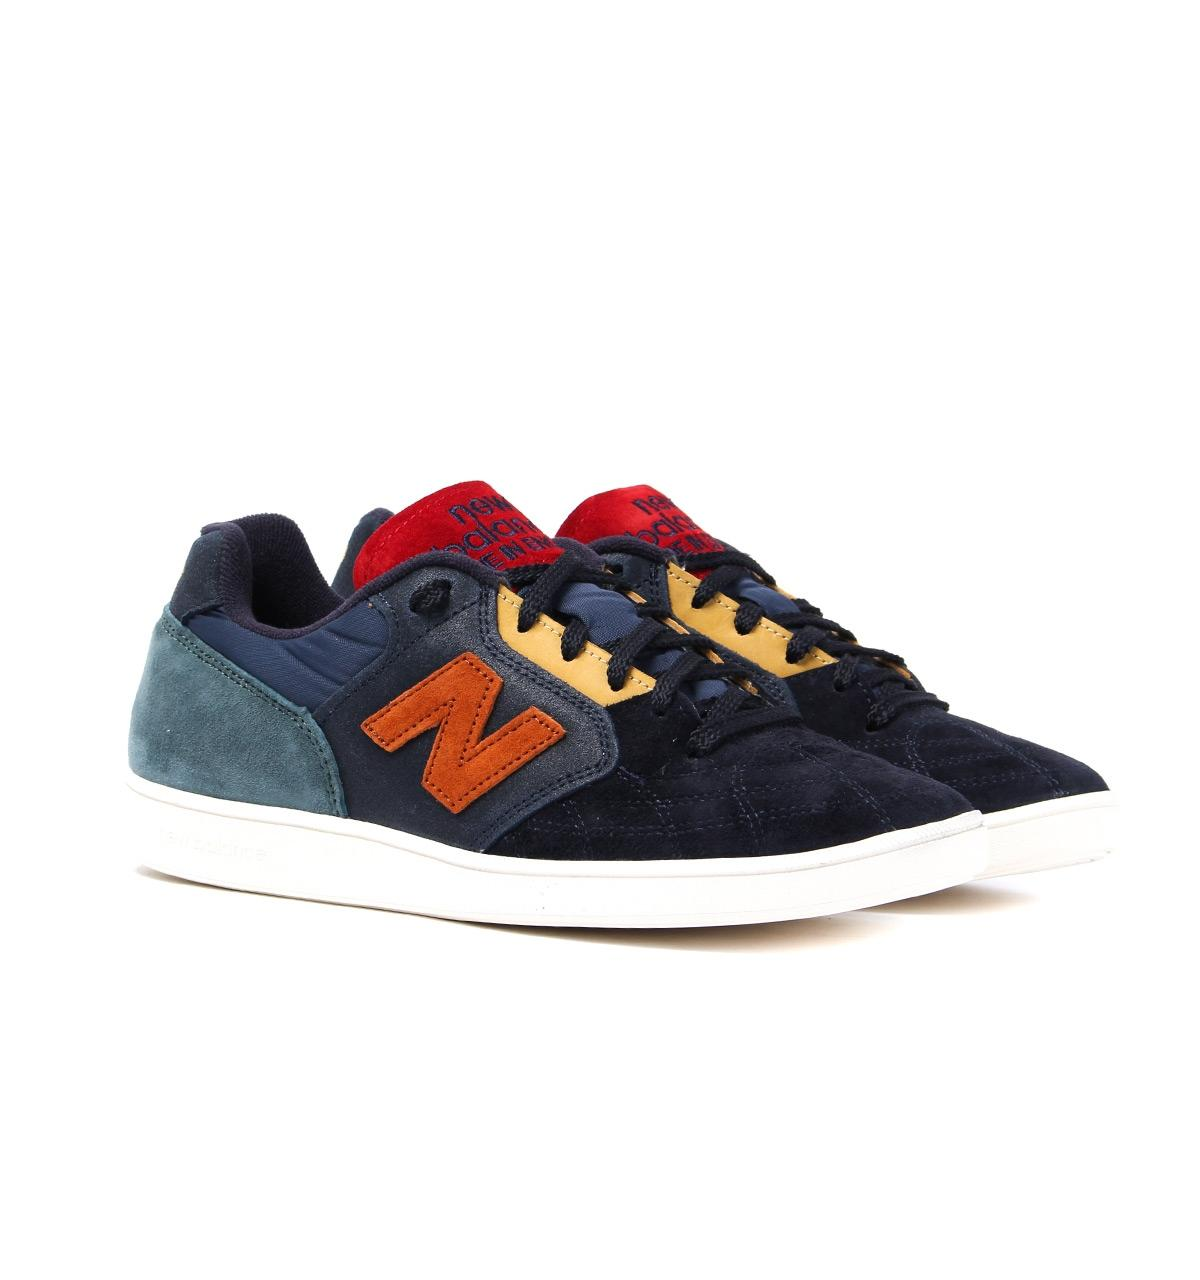 New Balance Suede Epic Tryp Navy & Orange Made In England Trainers ...